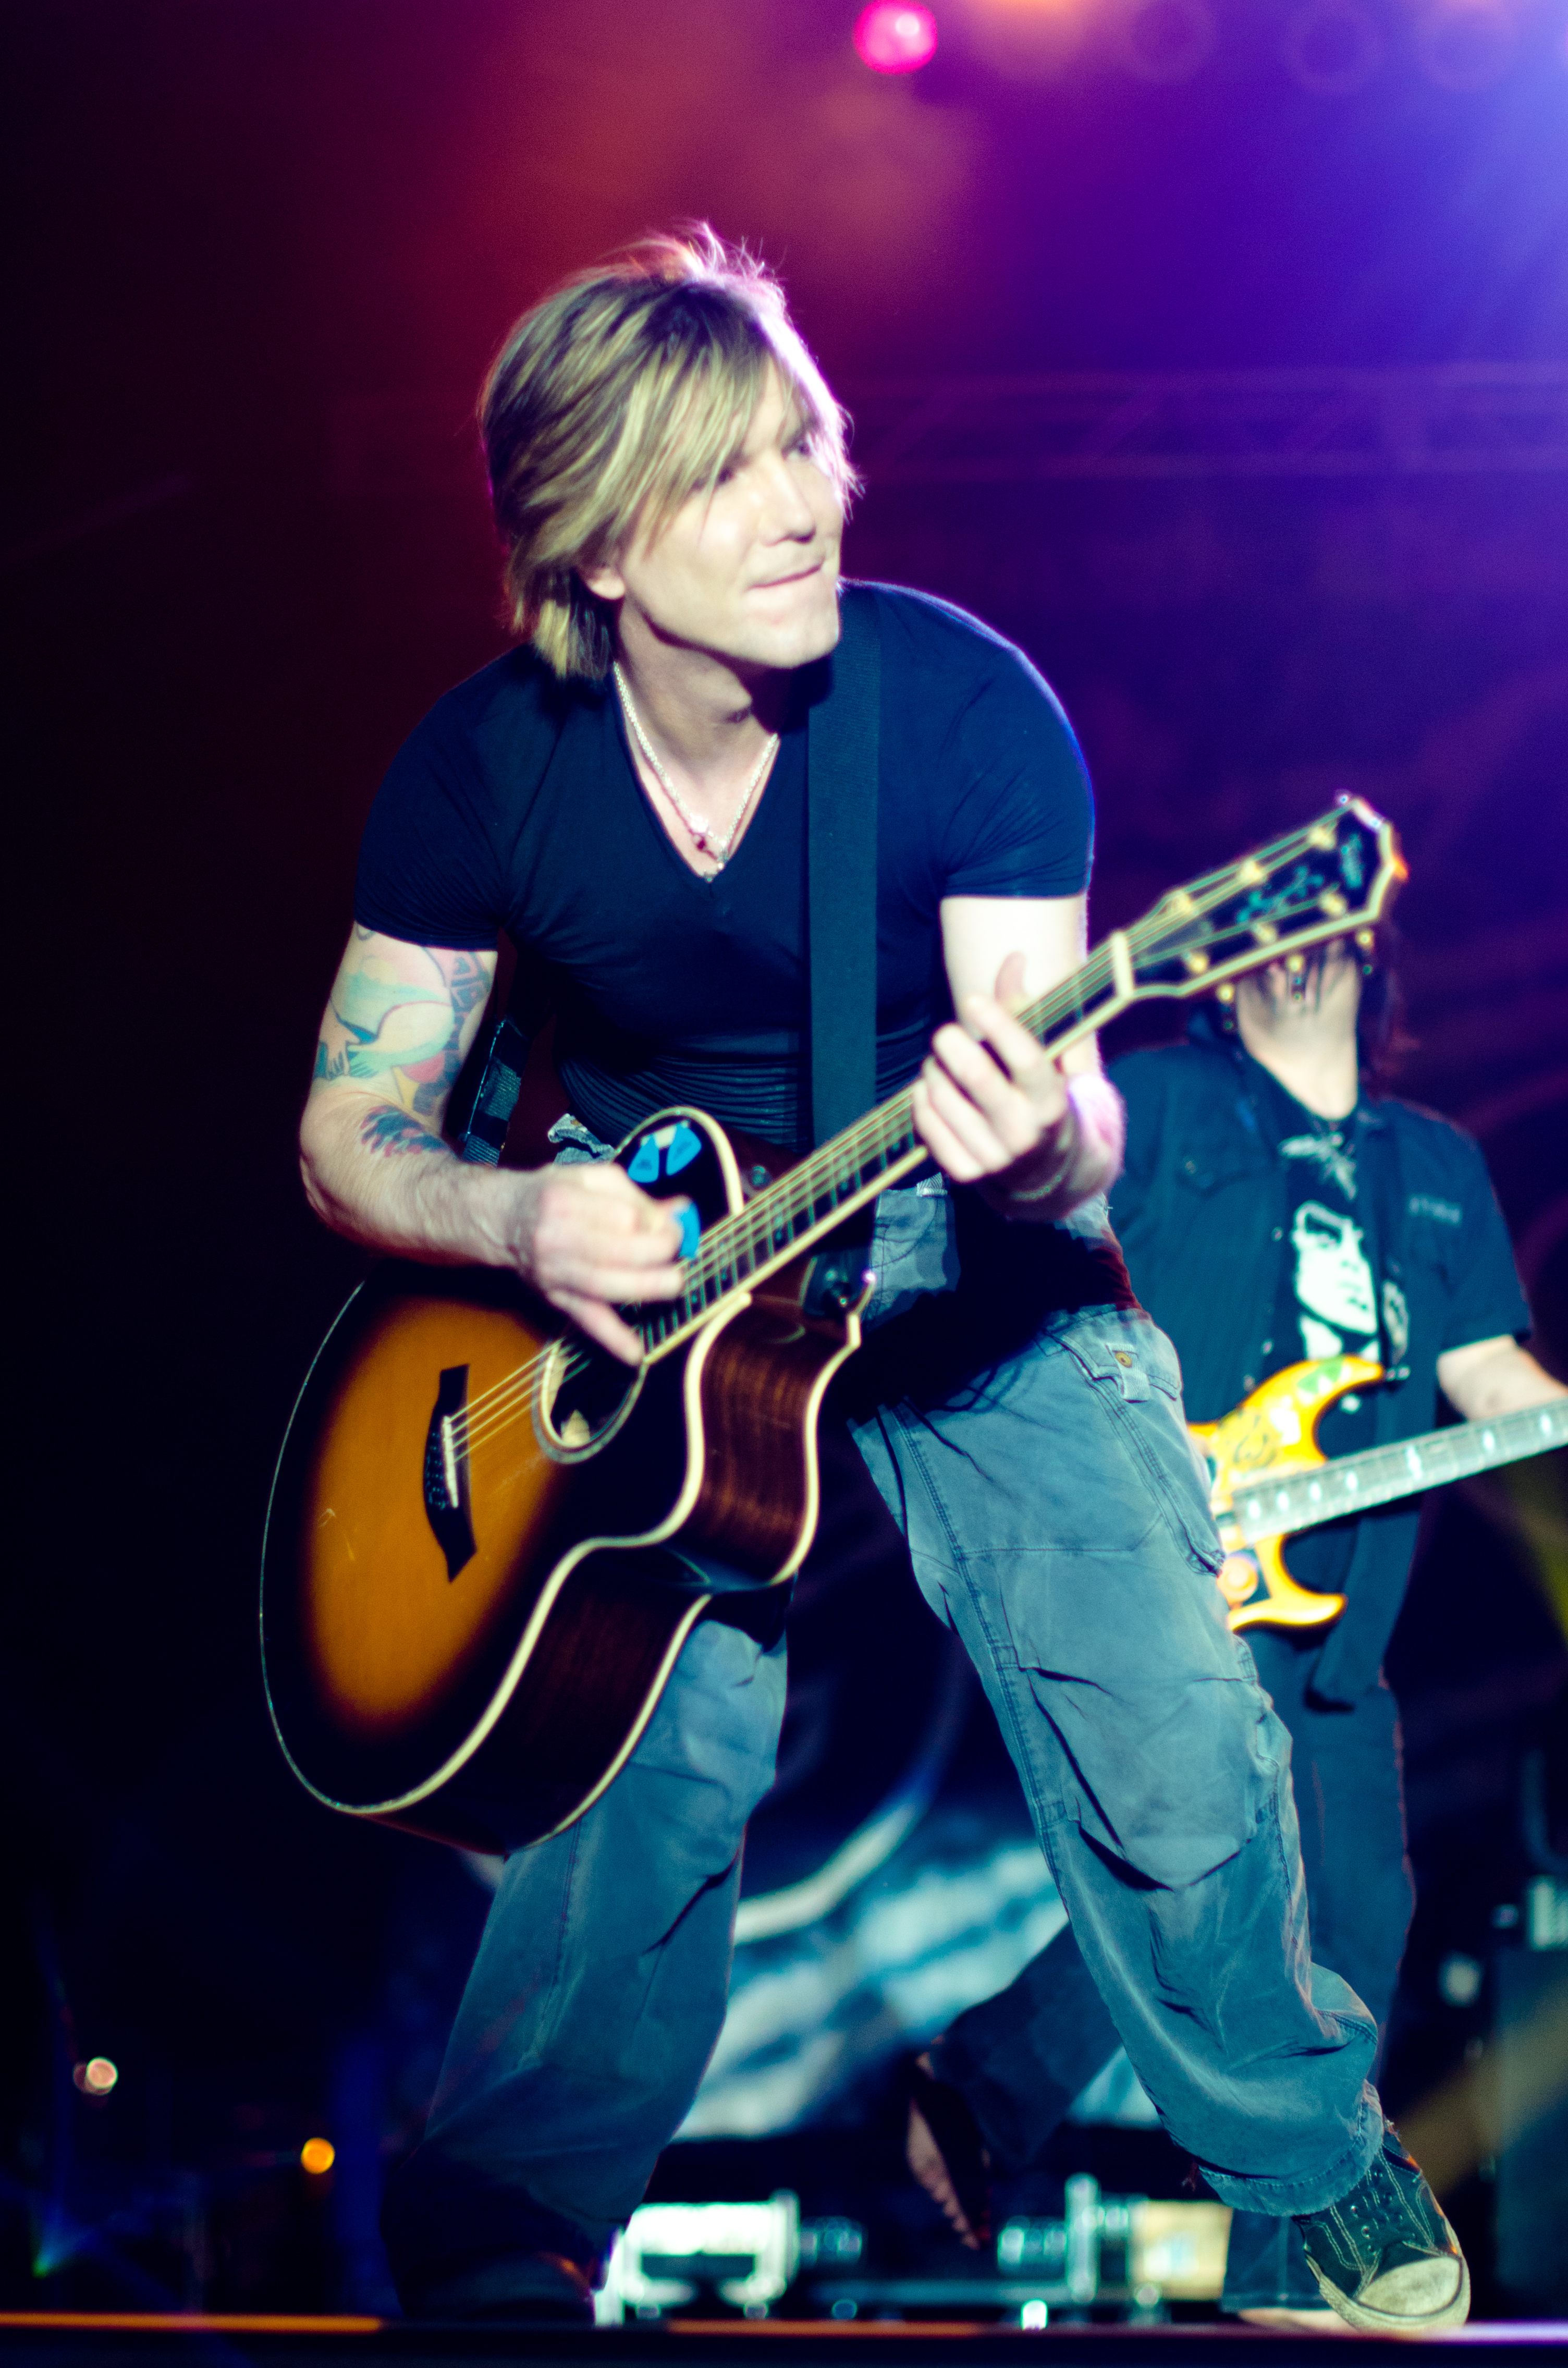 The 52-year old son of father Joseph Rzeznik and mother Edith  John Rzeznik in 2018 photo. John Rzeznik earned a  million dollar salary - leaving the net worth at 14 million in 2018